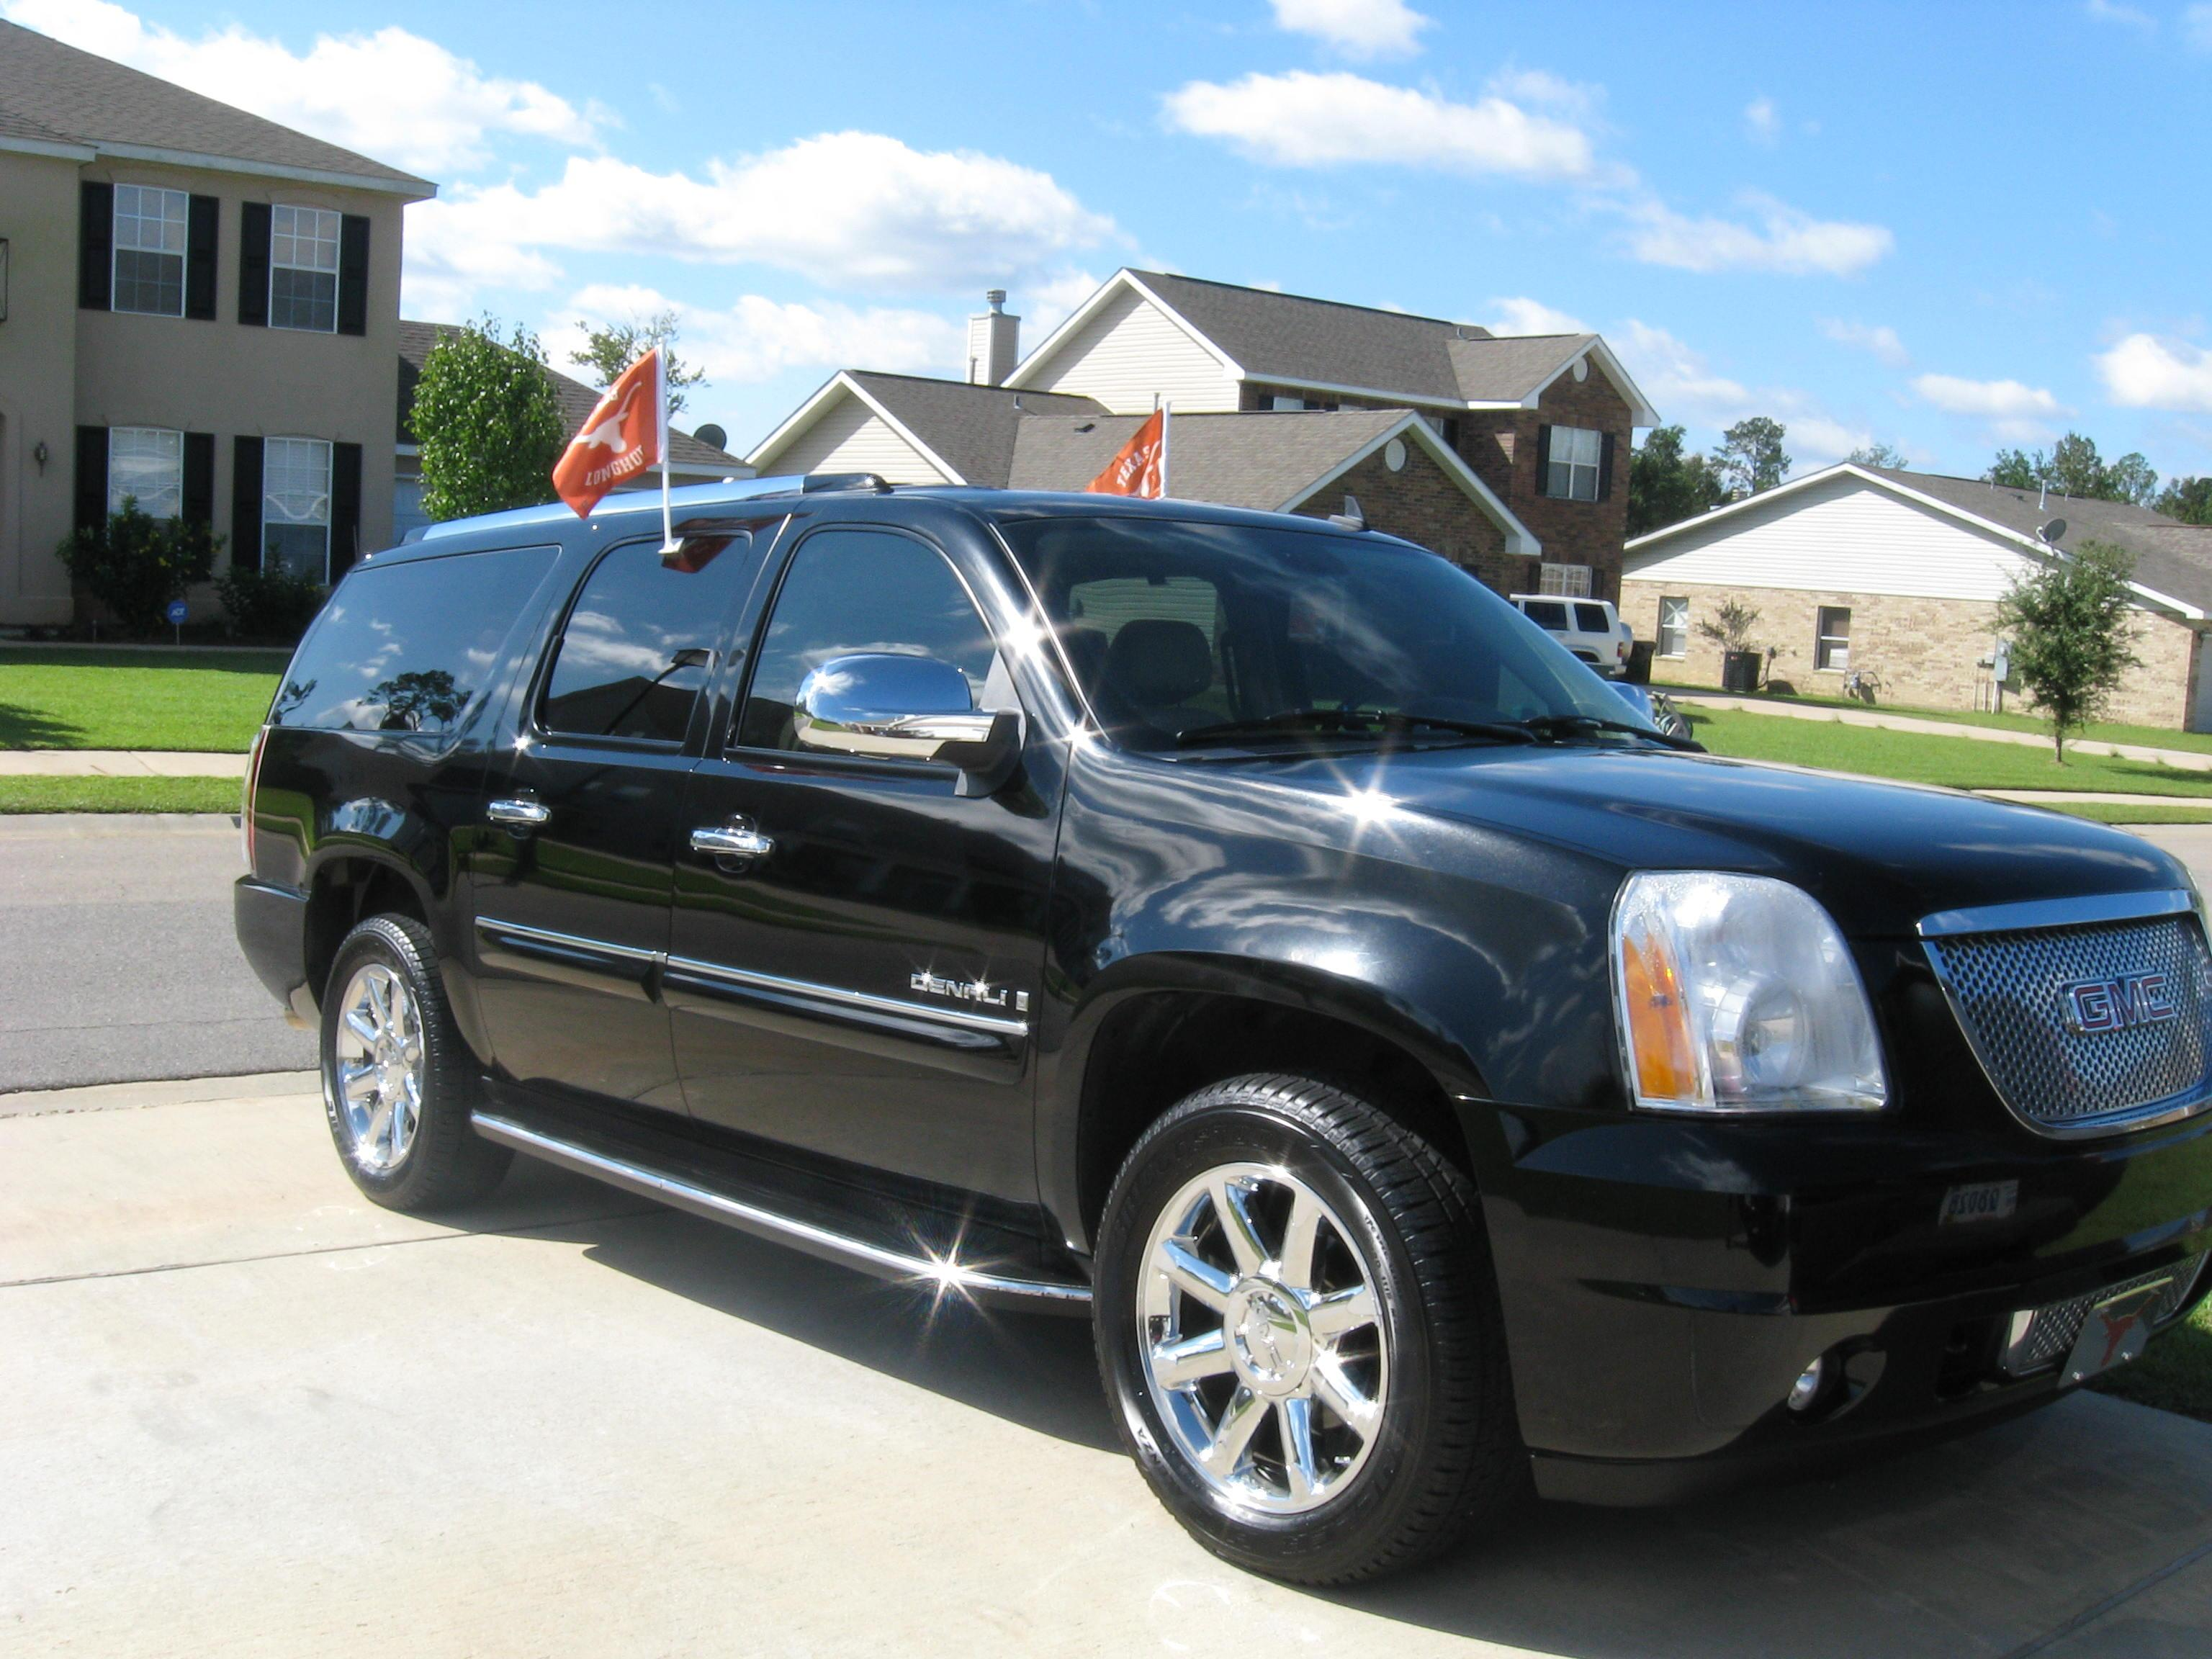 lazuenette 2007 gmc yukon denali specs photos. Black Bedroom Furniture Sets. Home Design Ideas